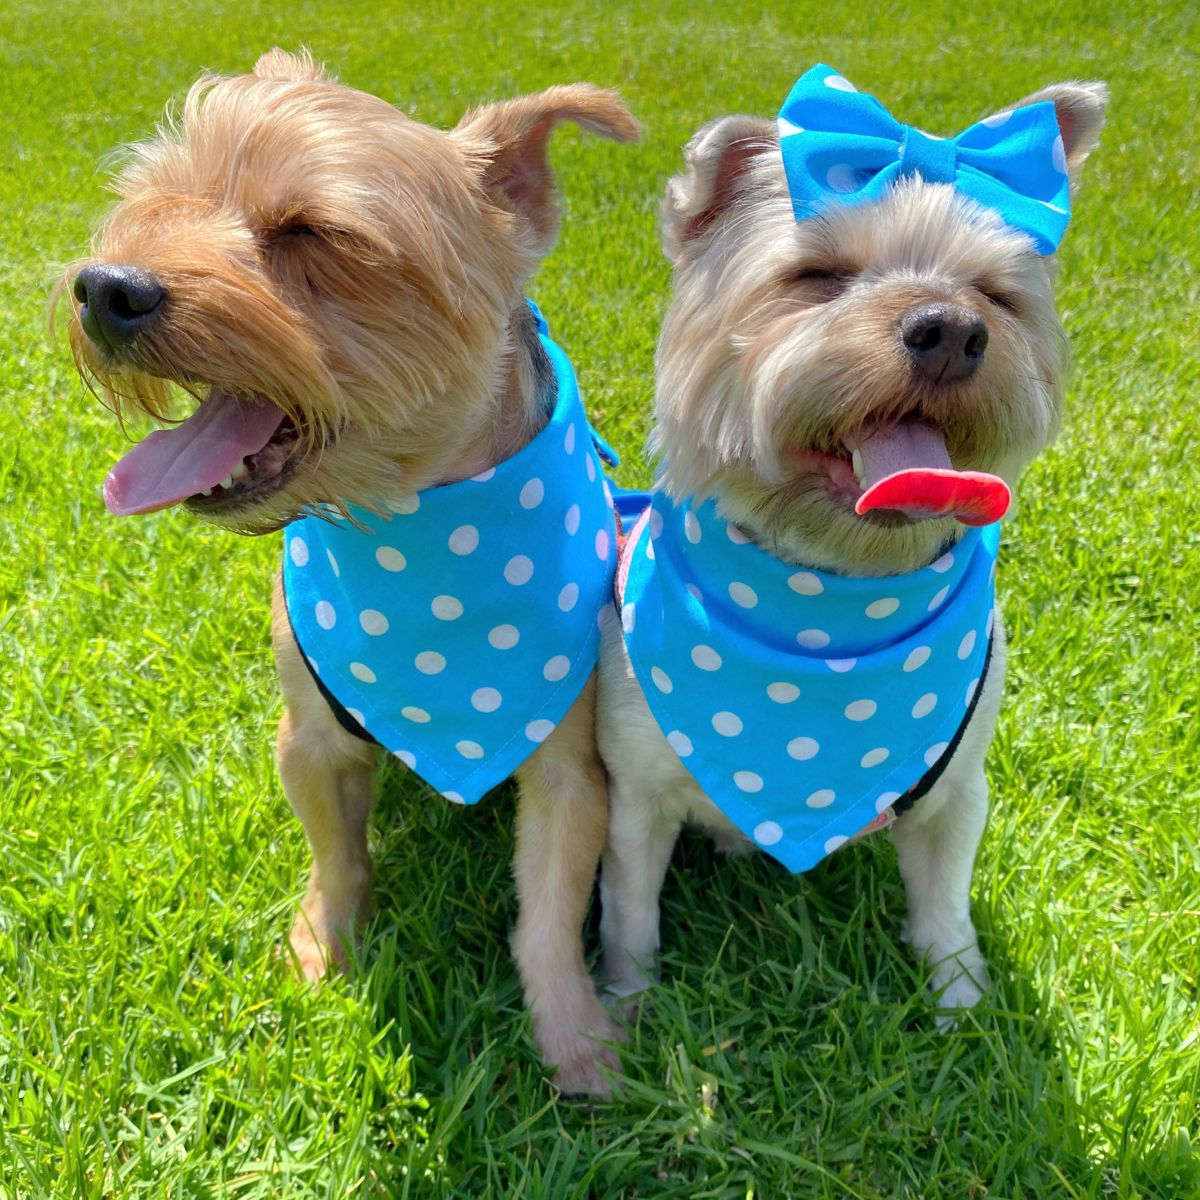 Yorkie Puppy Dogs We cover the